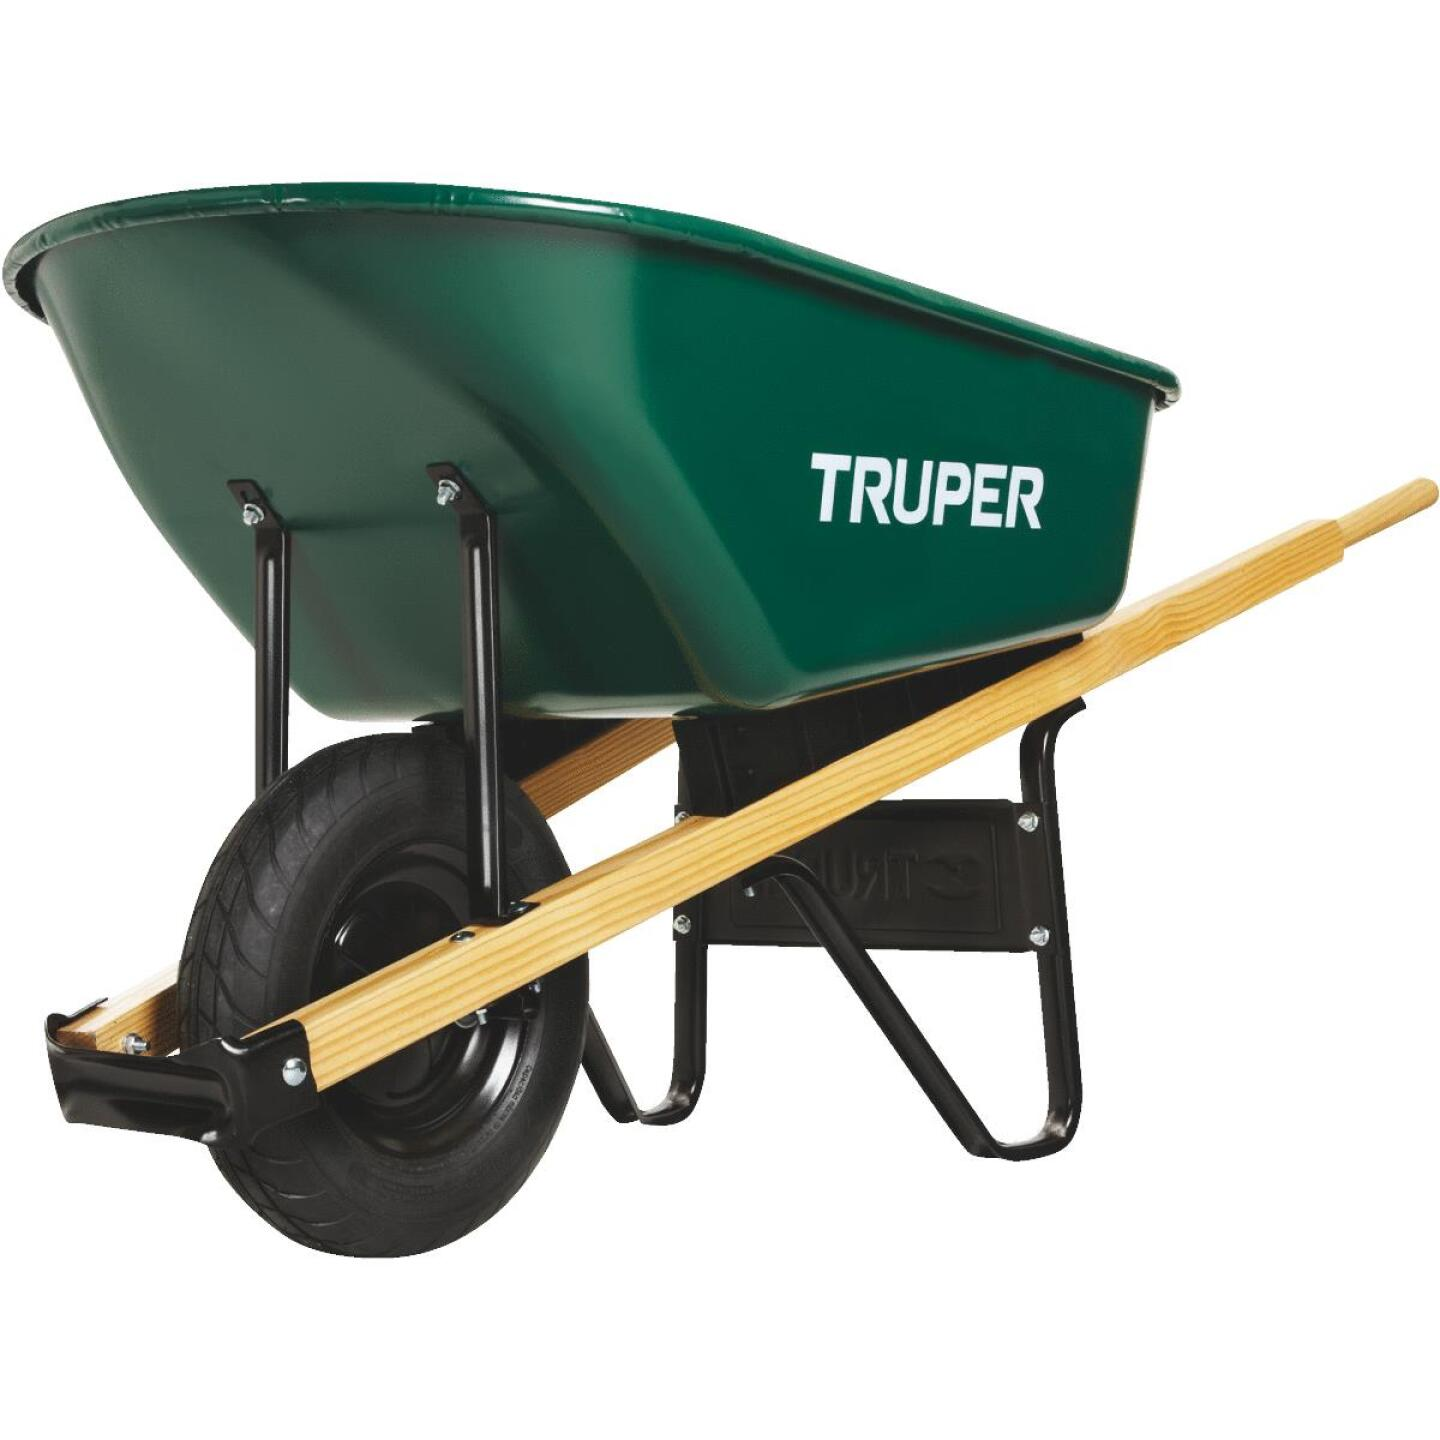 Truper 6 Cu. Ft. Steel Wheelbarrow Image 3